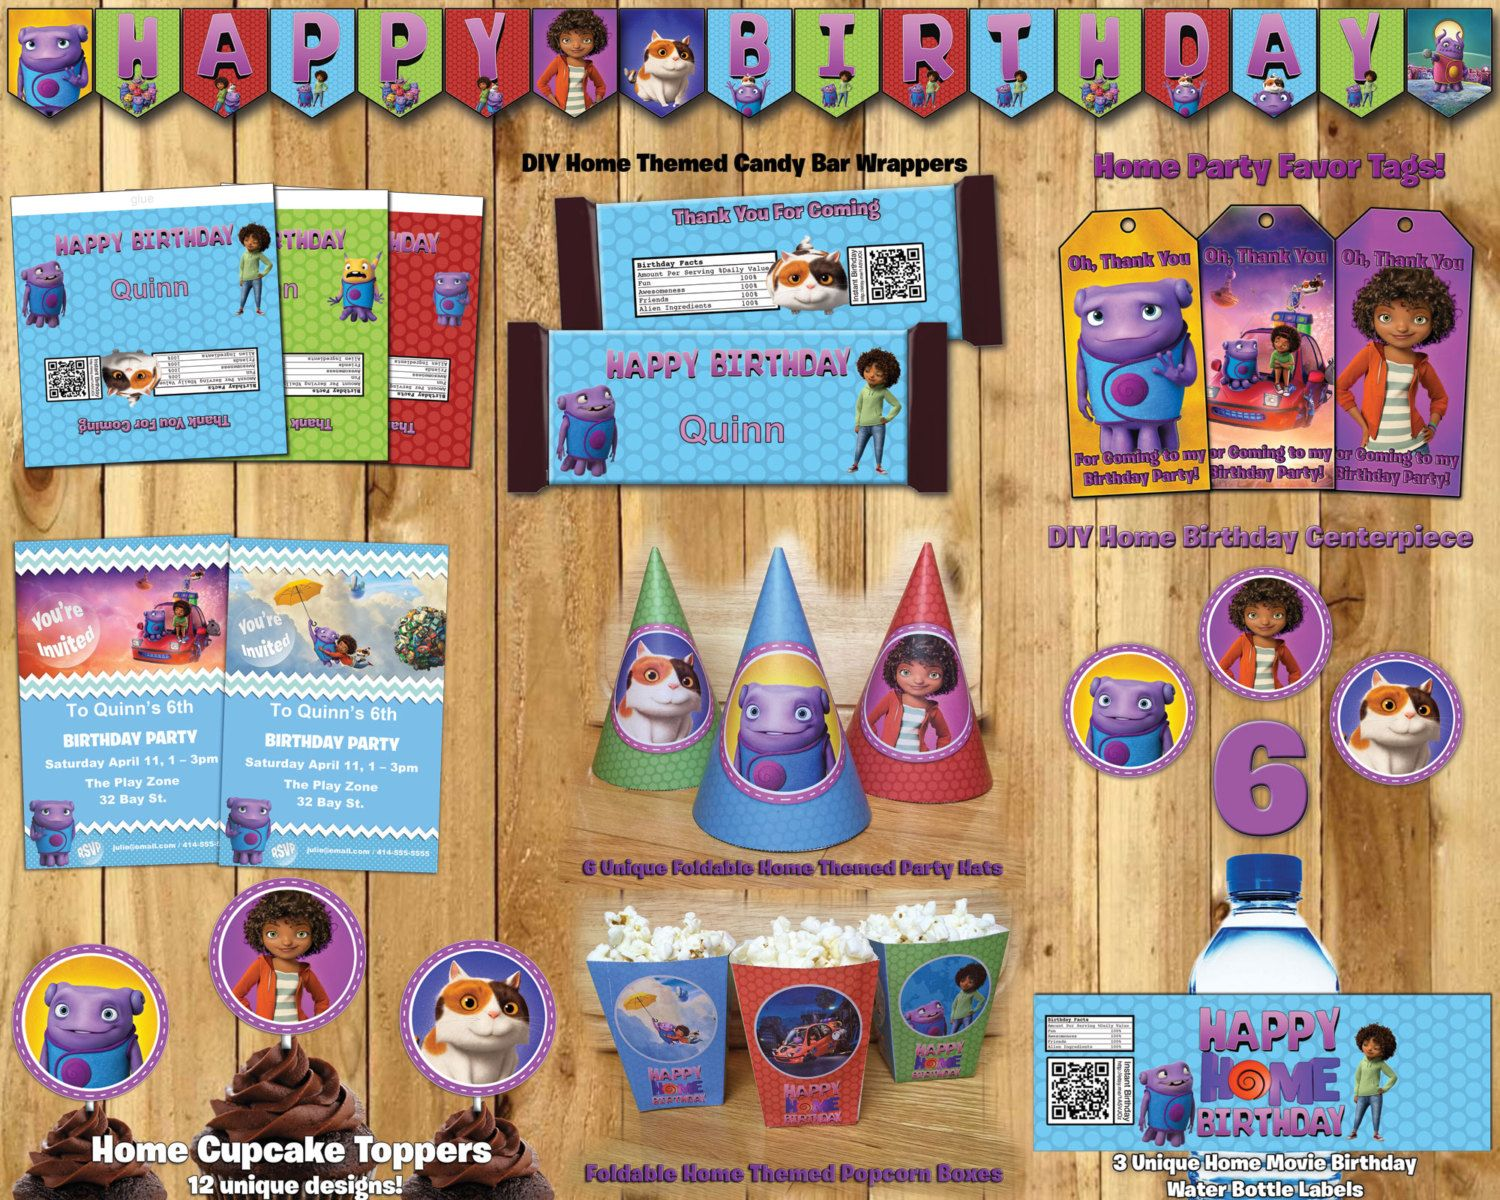 Diy home birthday party kit download banner invite cupcake toppers diy home birthday party kit download banner invite cupcake toppers favor tags hats centerpiece dreamworks home stopboris Choice Image